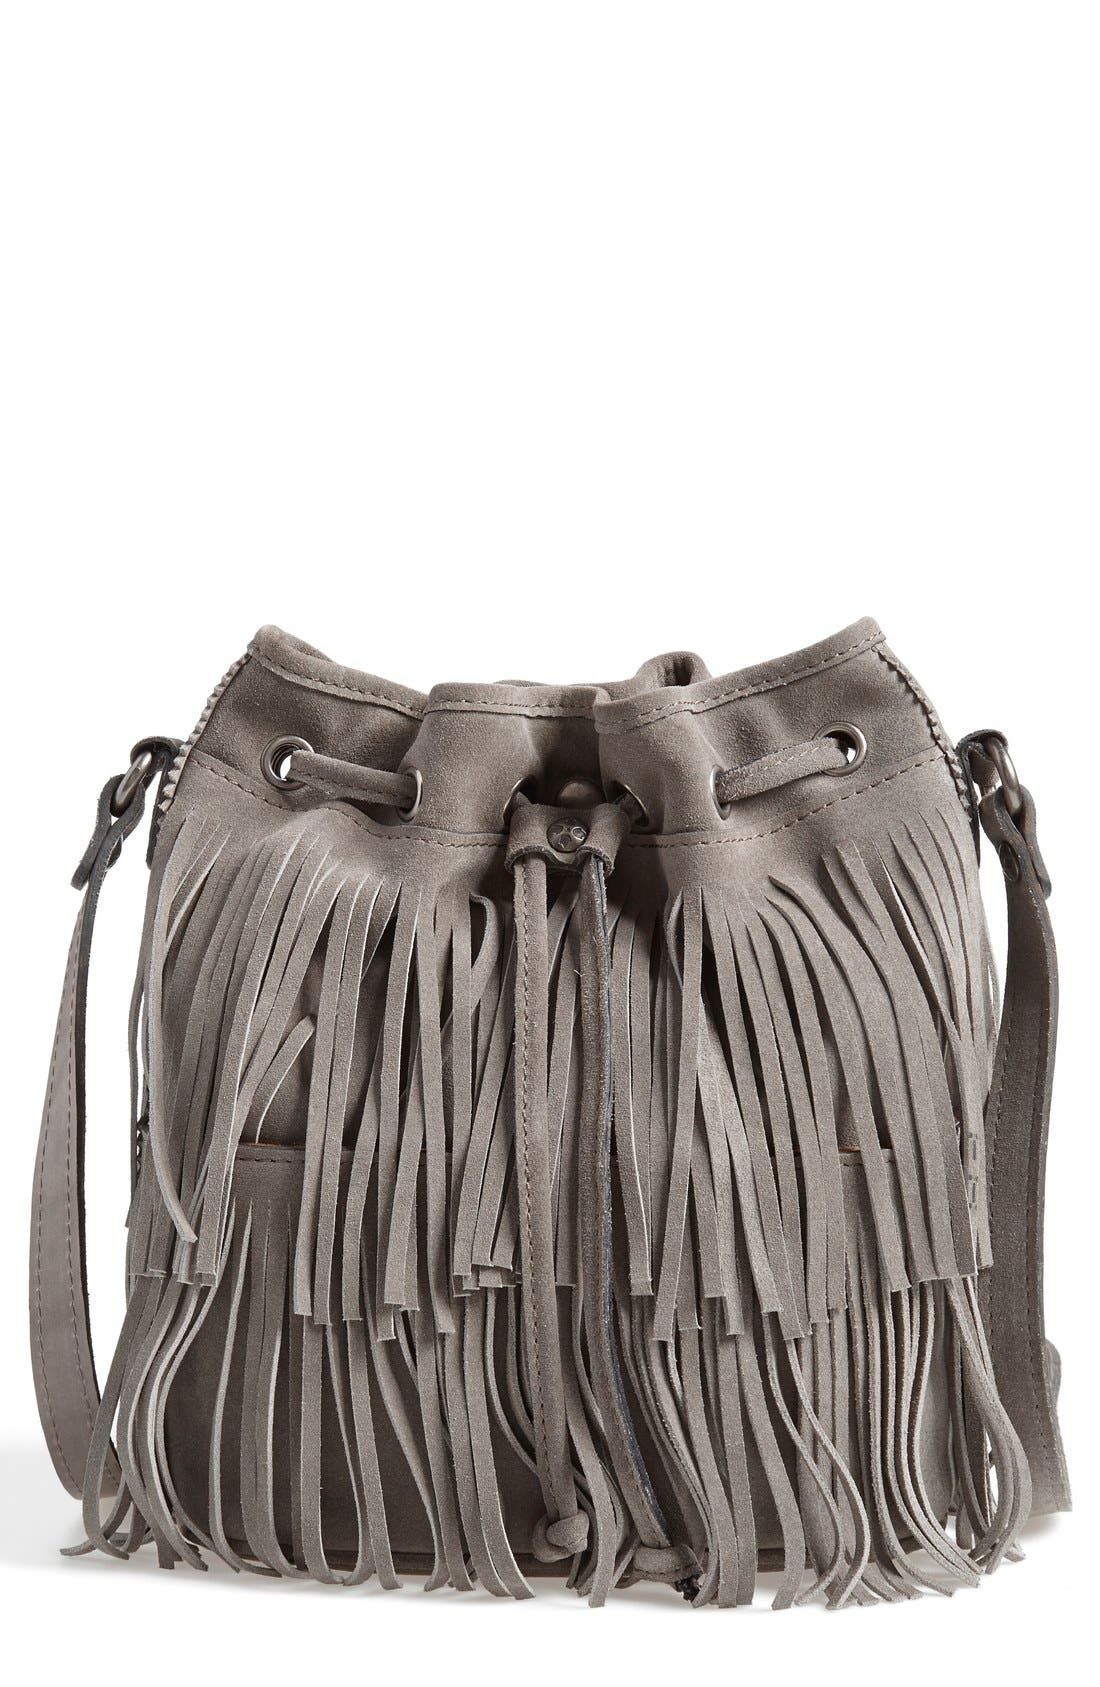 'Bronte' Fringe Bucket Bag,                         Main,                         color, 020